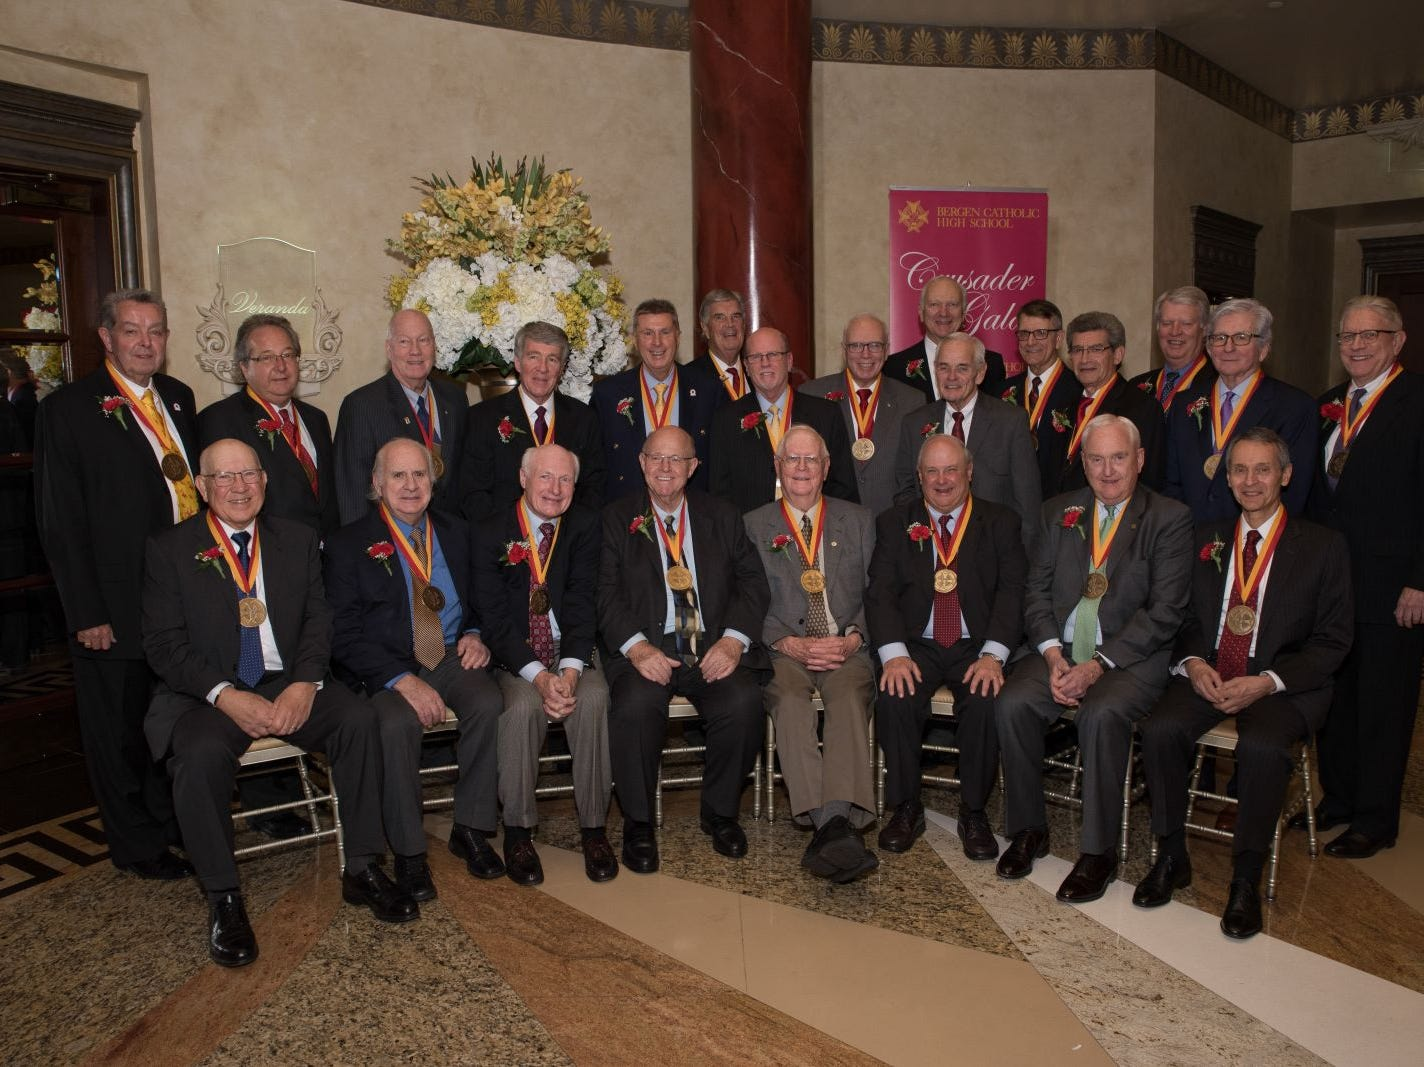 Bergen Catholic High School Class of 1964, honorees. Bergen Catholic High School celebrates their 2018 Crusader Gala at The Venetian in Garfield. 11/16/2018